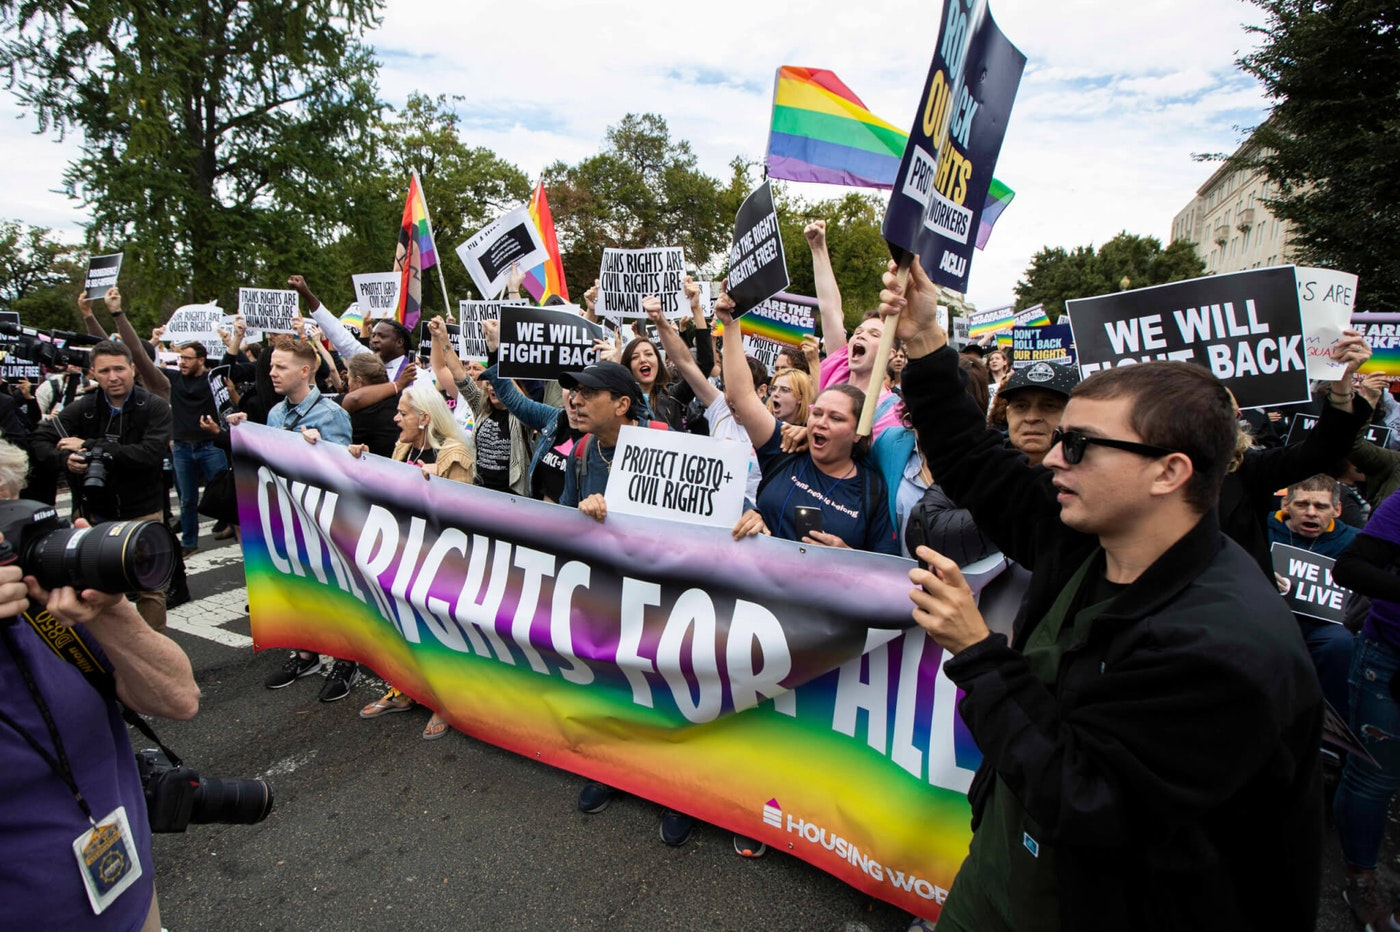 In this Oct. 8, 2019 file photo, supporters of LGBT rights stage a protest on the street in front of the U.S. Supreme Court in Washington. A group spearheading a ballot drive to add LGBT anti-discrimination protections to Michigan's civil rights law moved Monday, April 13, 2020, to collect voter signatures online because of the coronavirus pandemic. (AP Photo/Manuel Balce Ceneta,File)